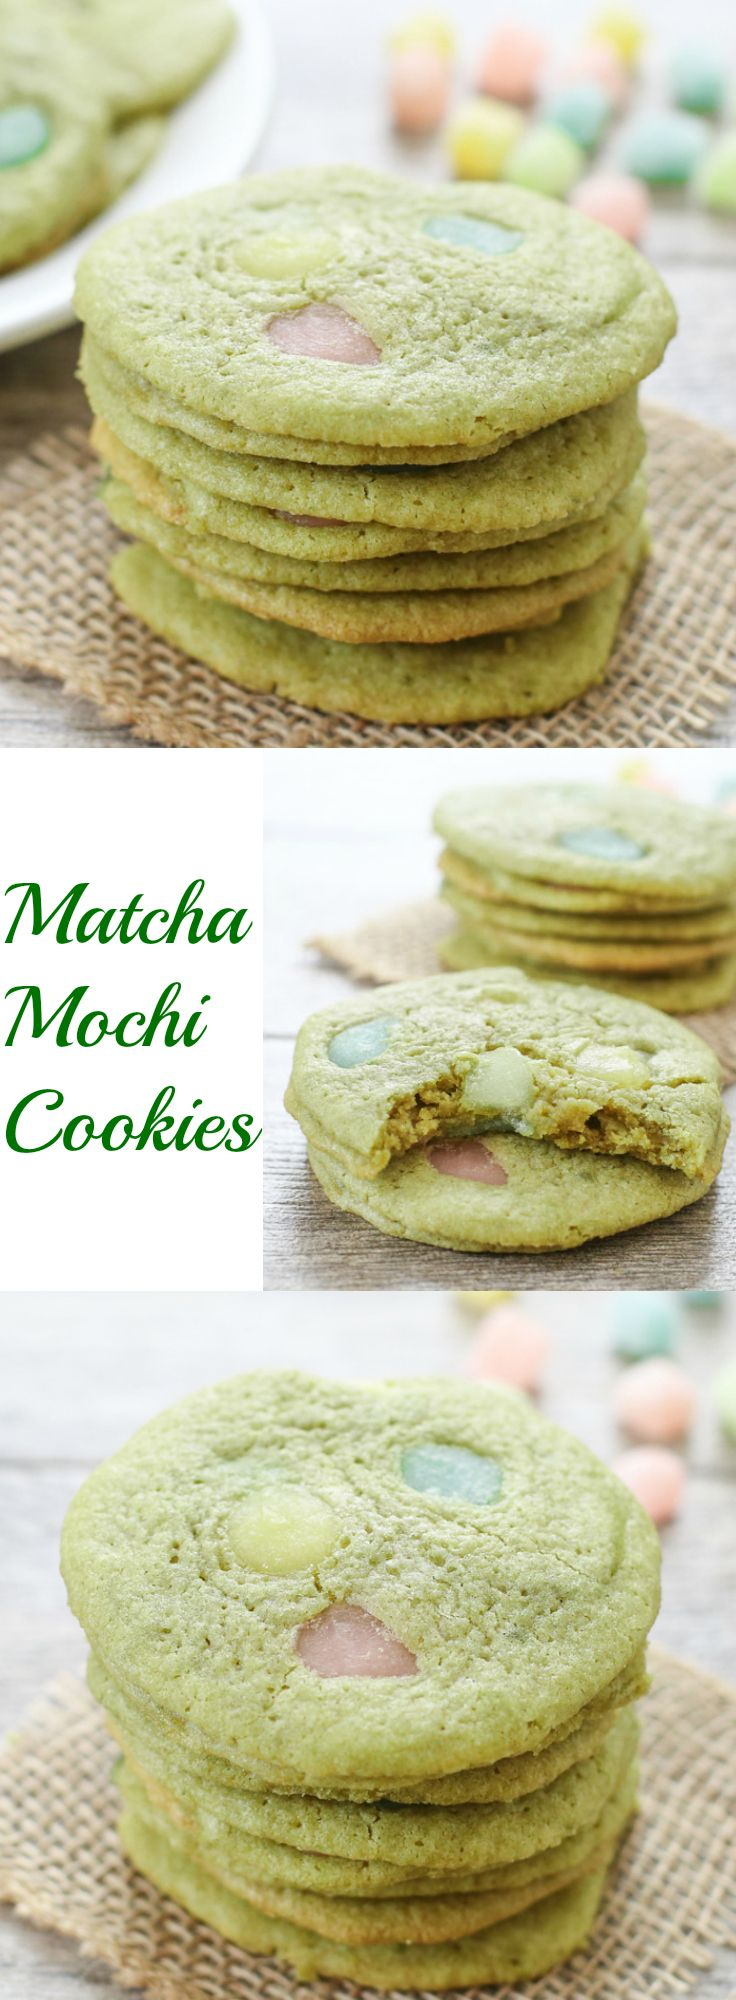 Matcha Green Tea Mochi Cookies.  These matcha green tea cookies are crispy and chewy, with pieces of mochi sprinkled throughout.